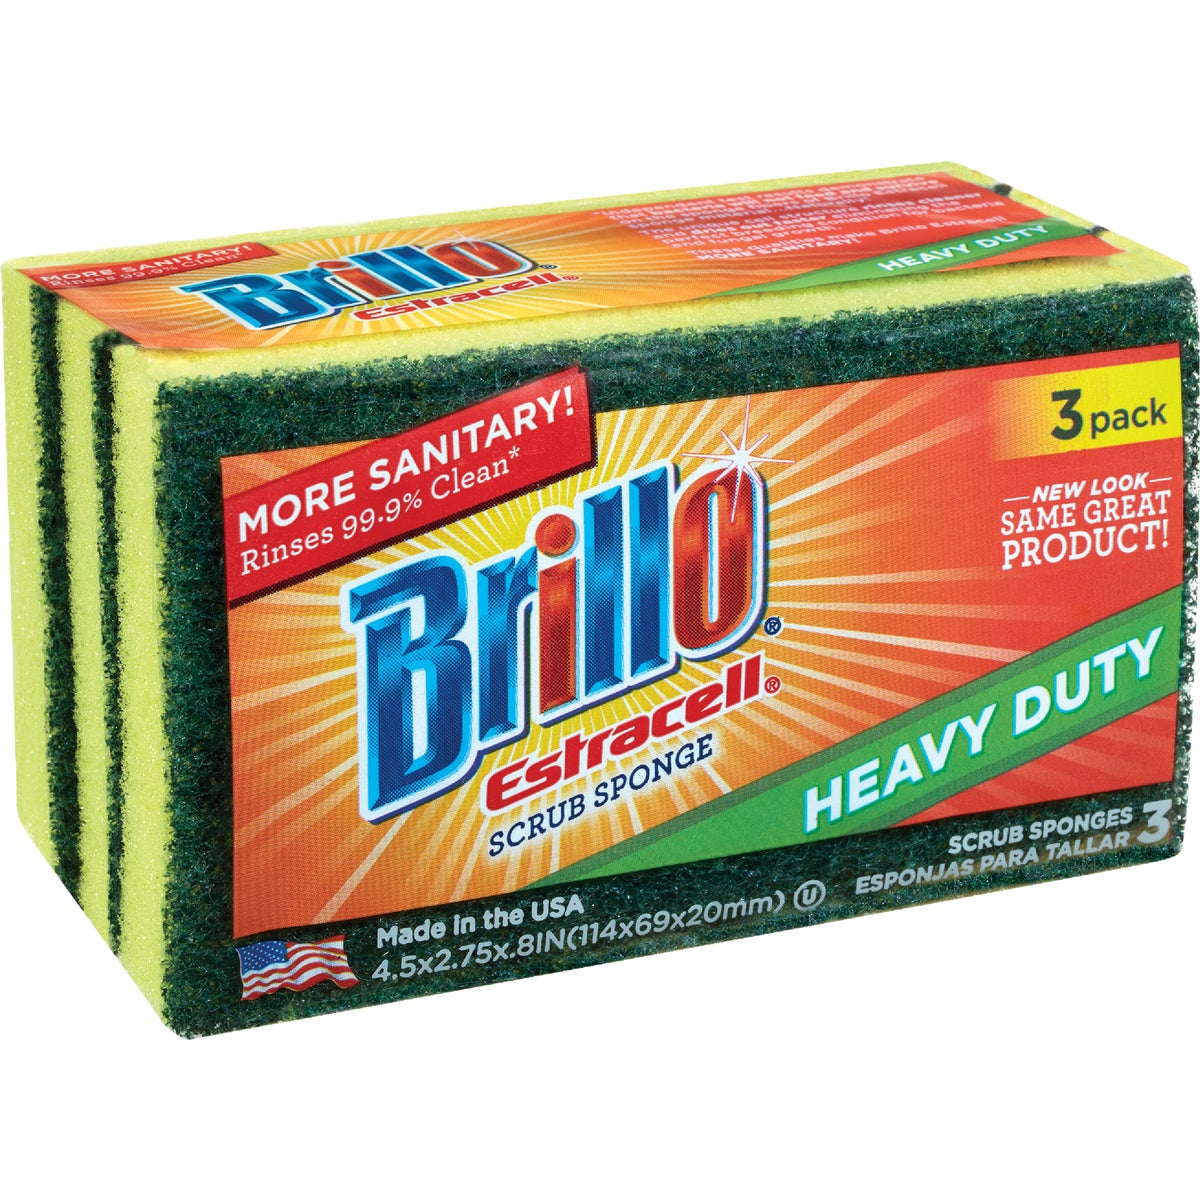 HEAVY DUTY SCRUBBER